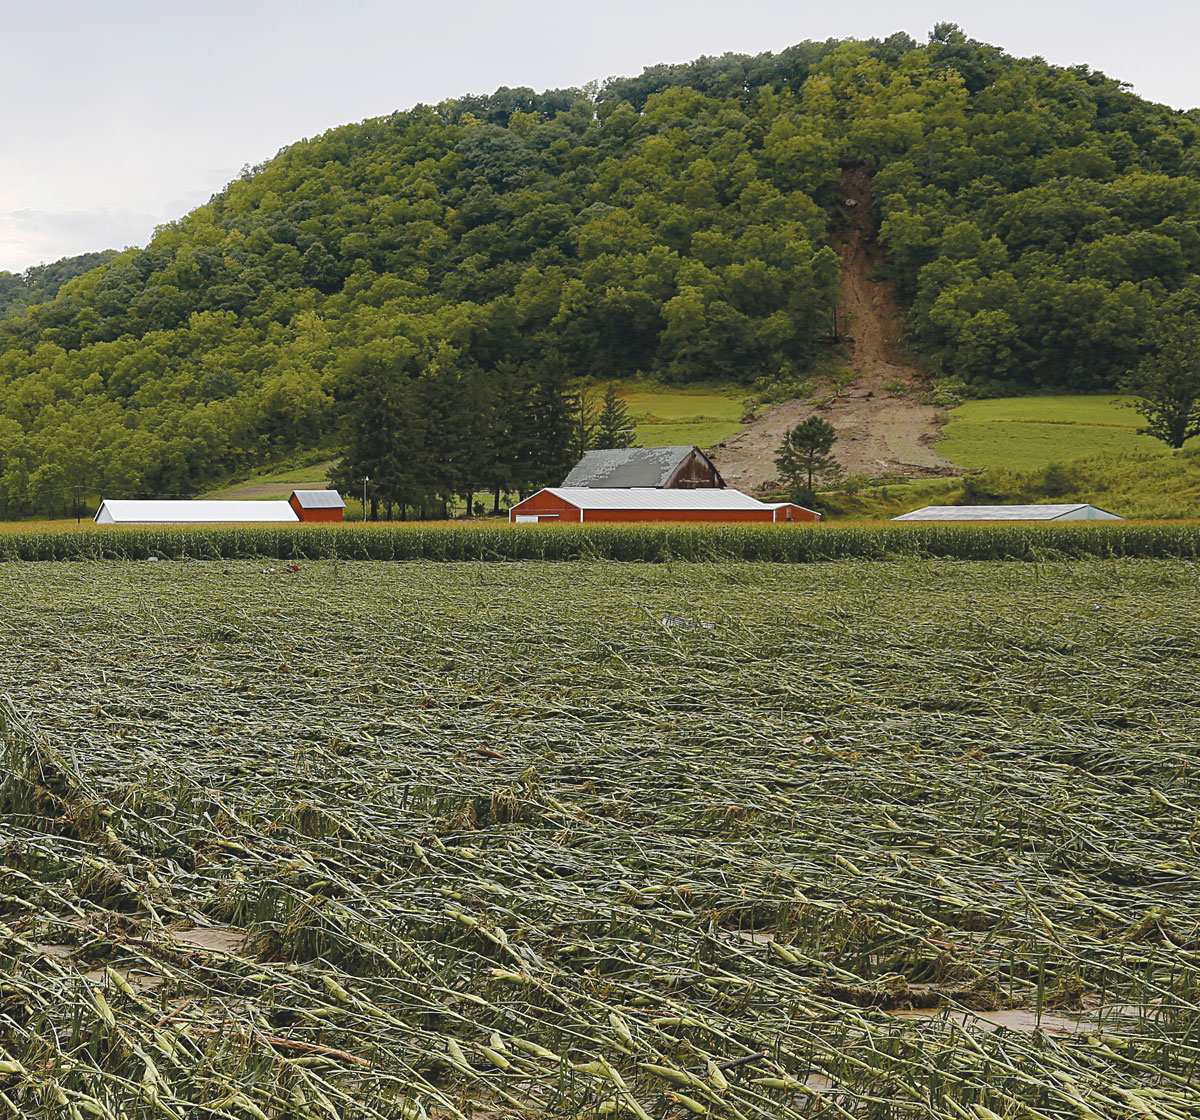 Driftless hillsides that have held the land in place for thousands of years gave way in numerous locations between August 27 and 28, 2018. Photo by Jon Lee.